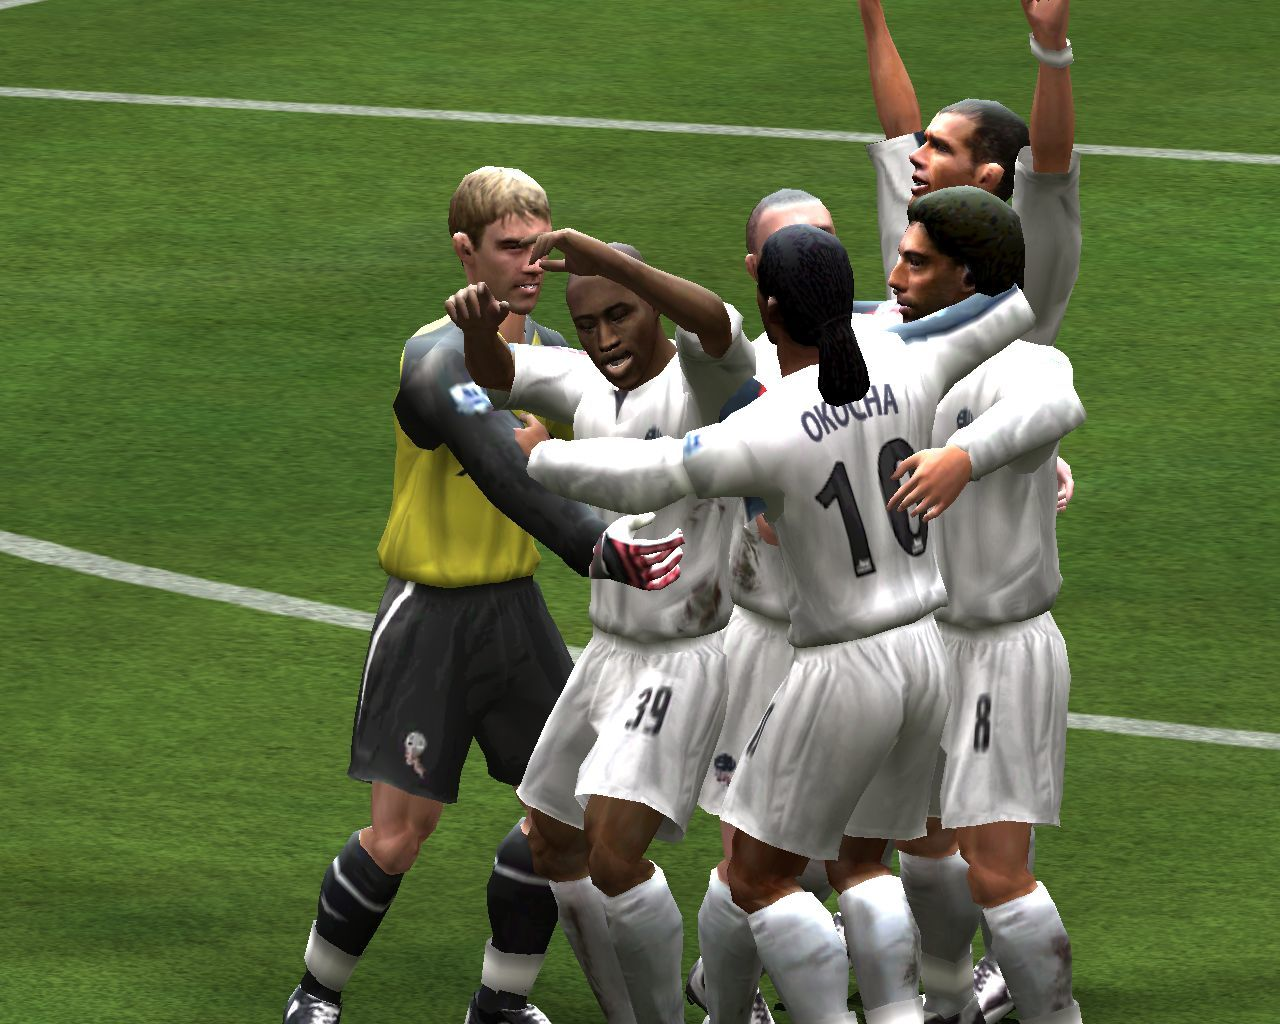 FIFA Soccer 06 Windows Cutscene after we scored a goal